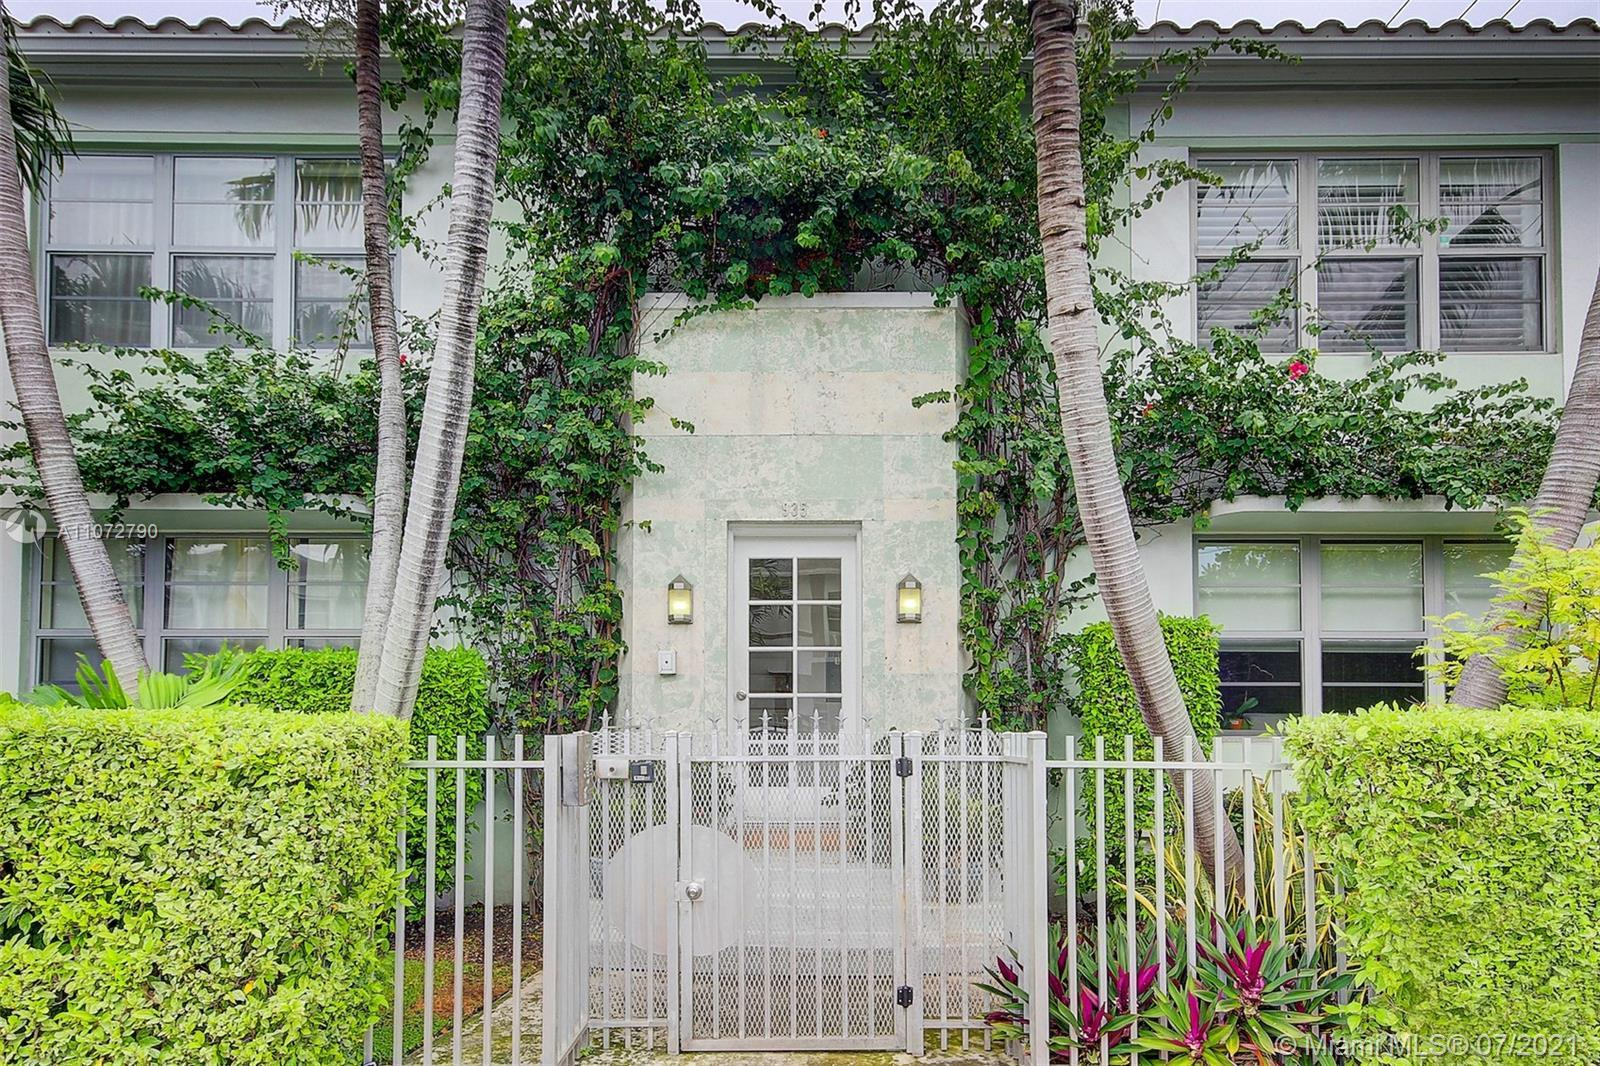 The perfect combination of vintage Deco style & modern living. This spacious 1/1 in a pristine 4 uni